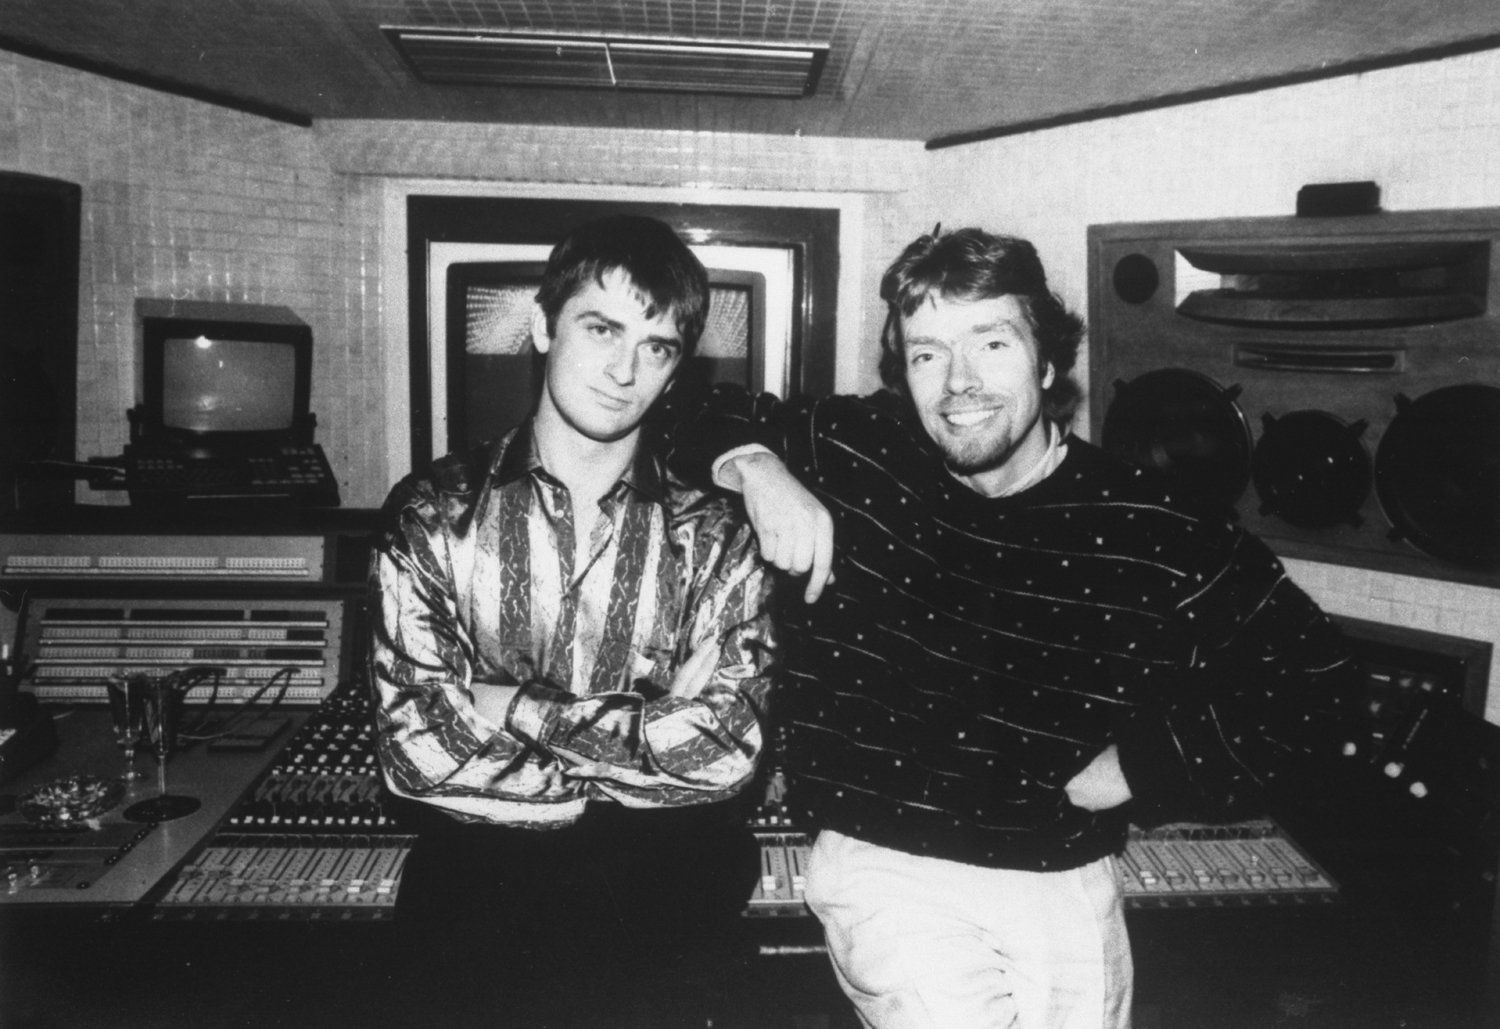 Richard Branson with Mike Oldfield at Virgin Records